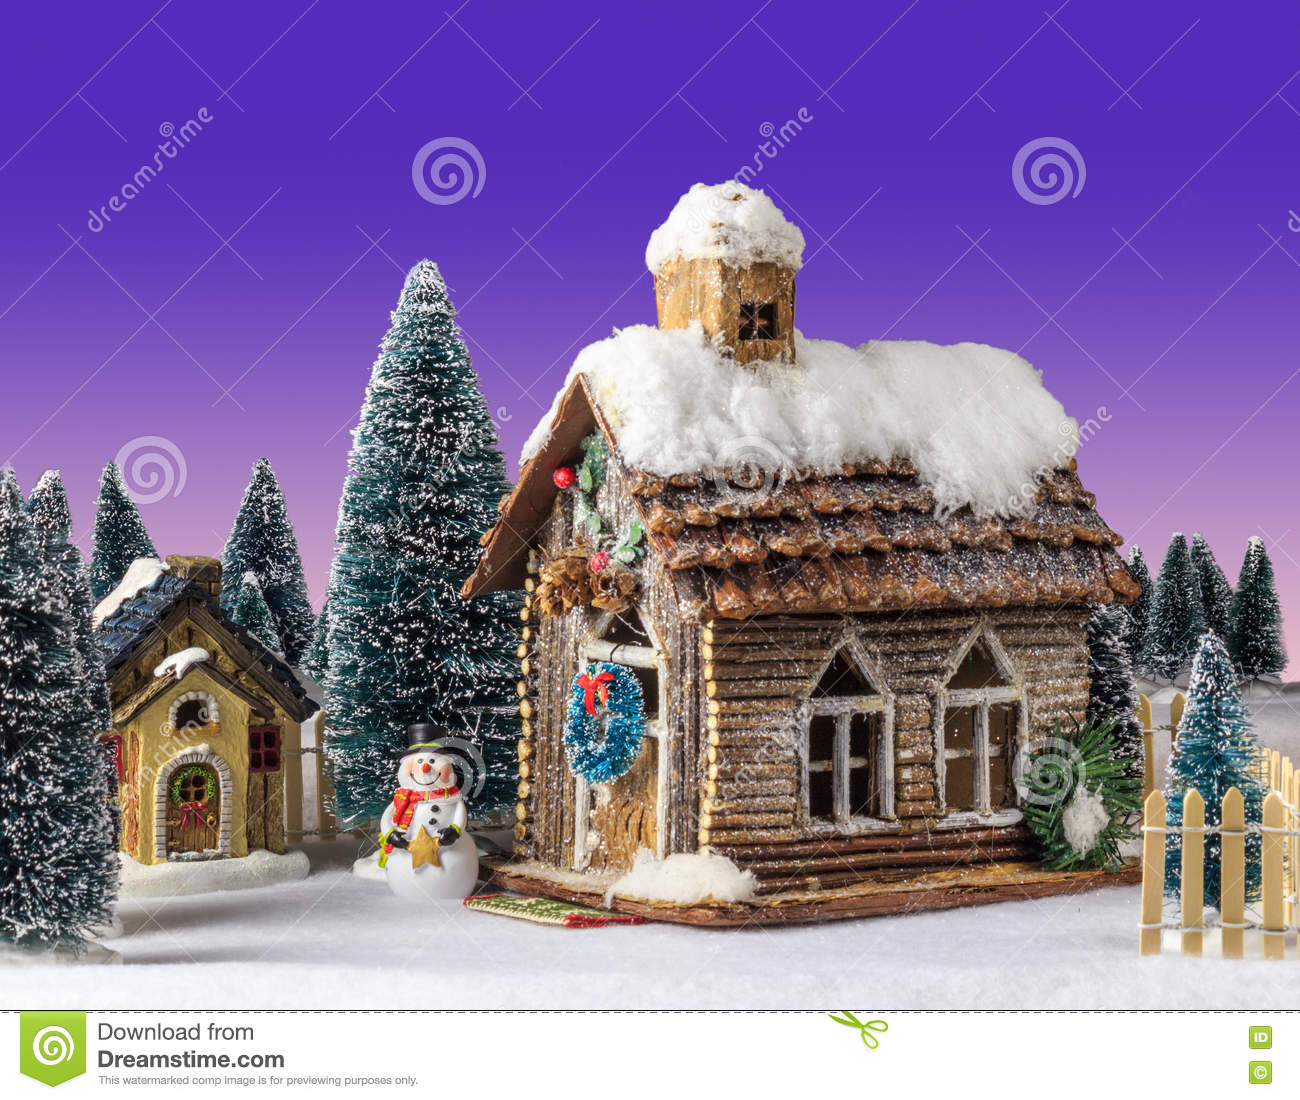 New Year Christmas House Decorated With Snow Figure Snowman Stock